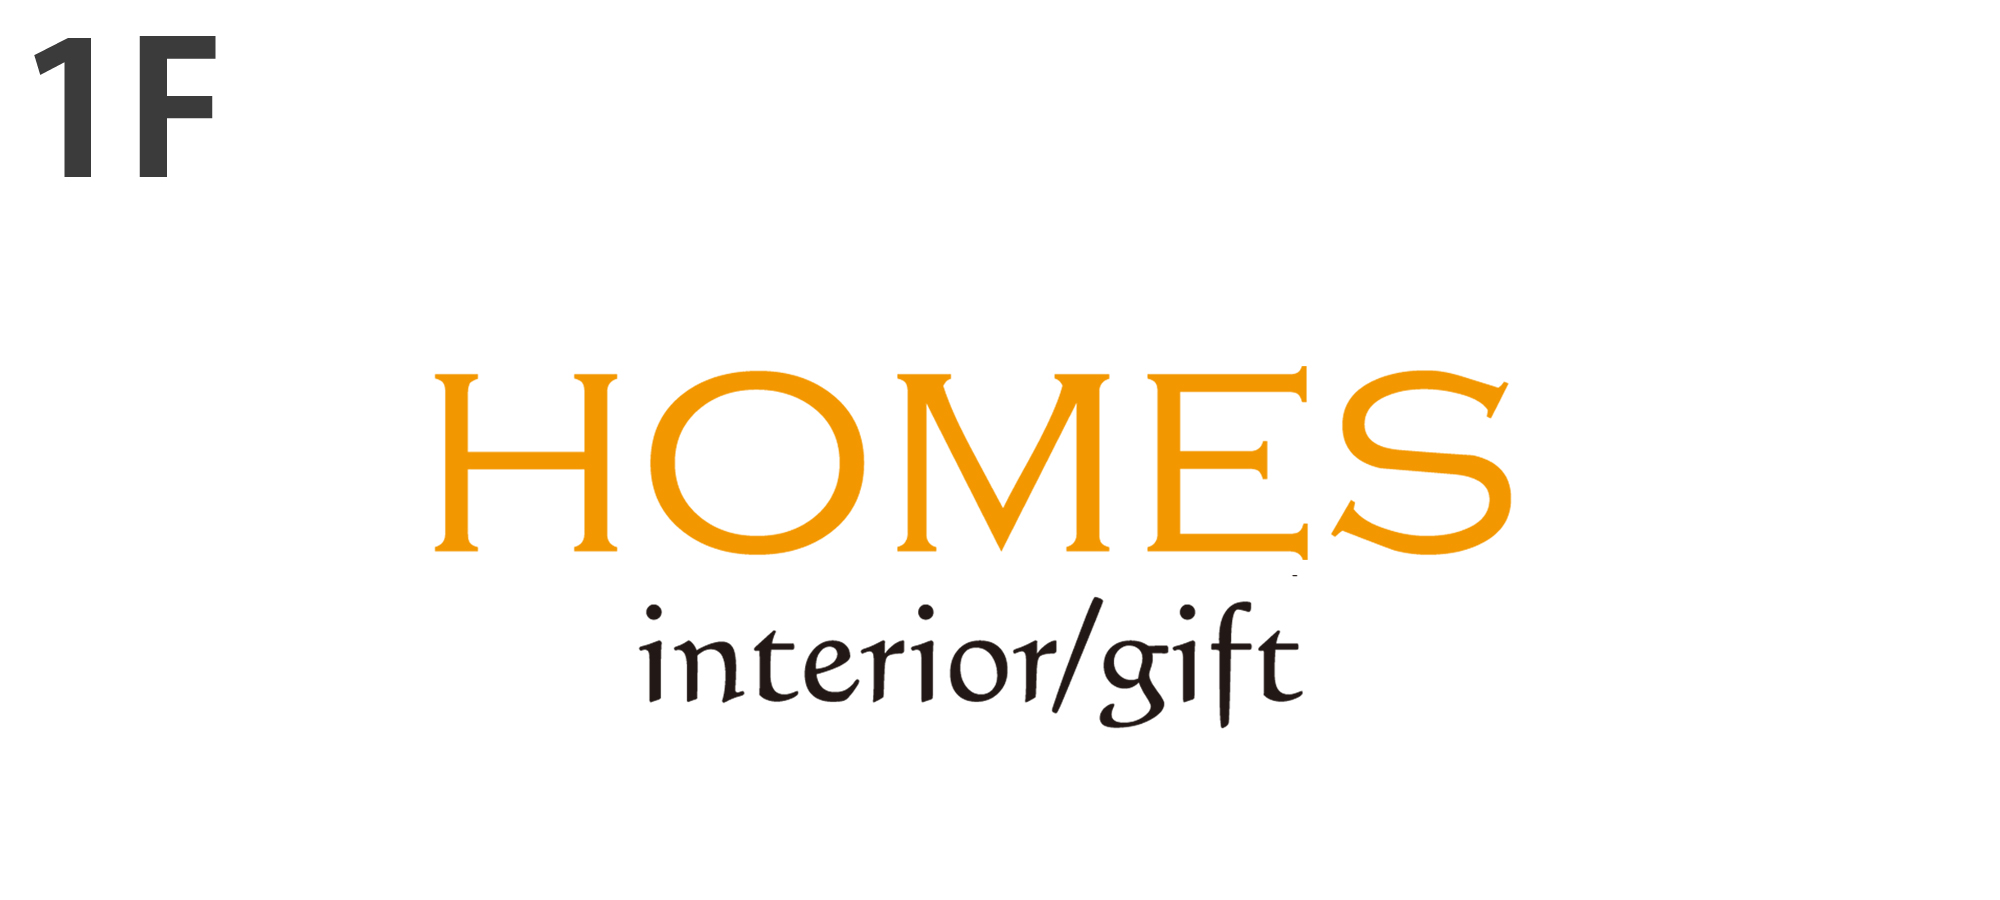 Homes interiorgift homes 1f negle Image collections